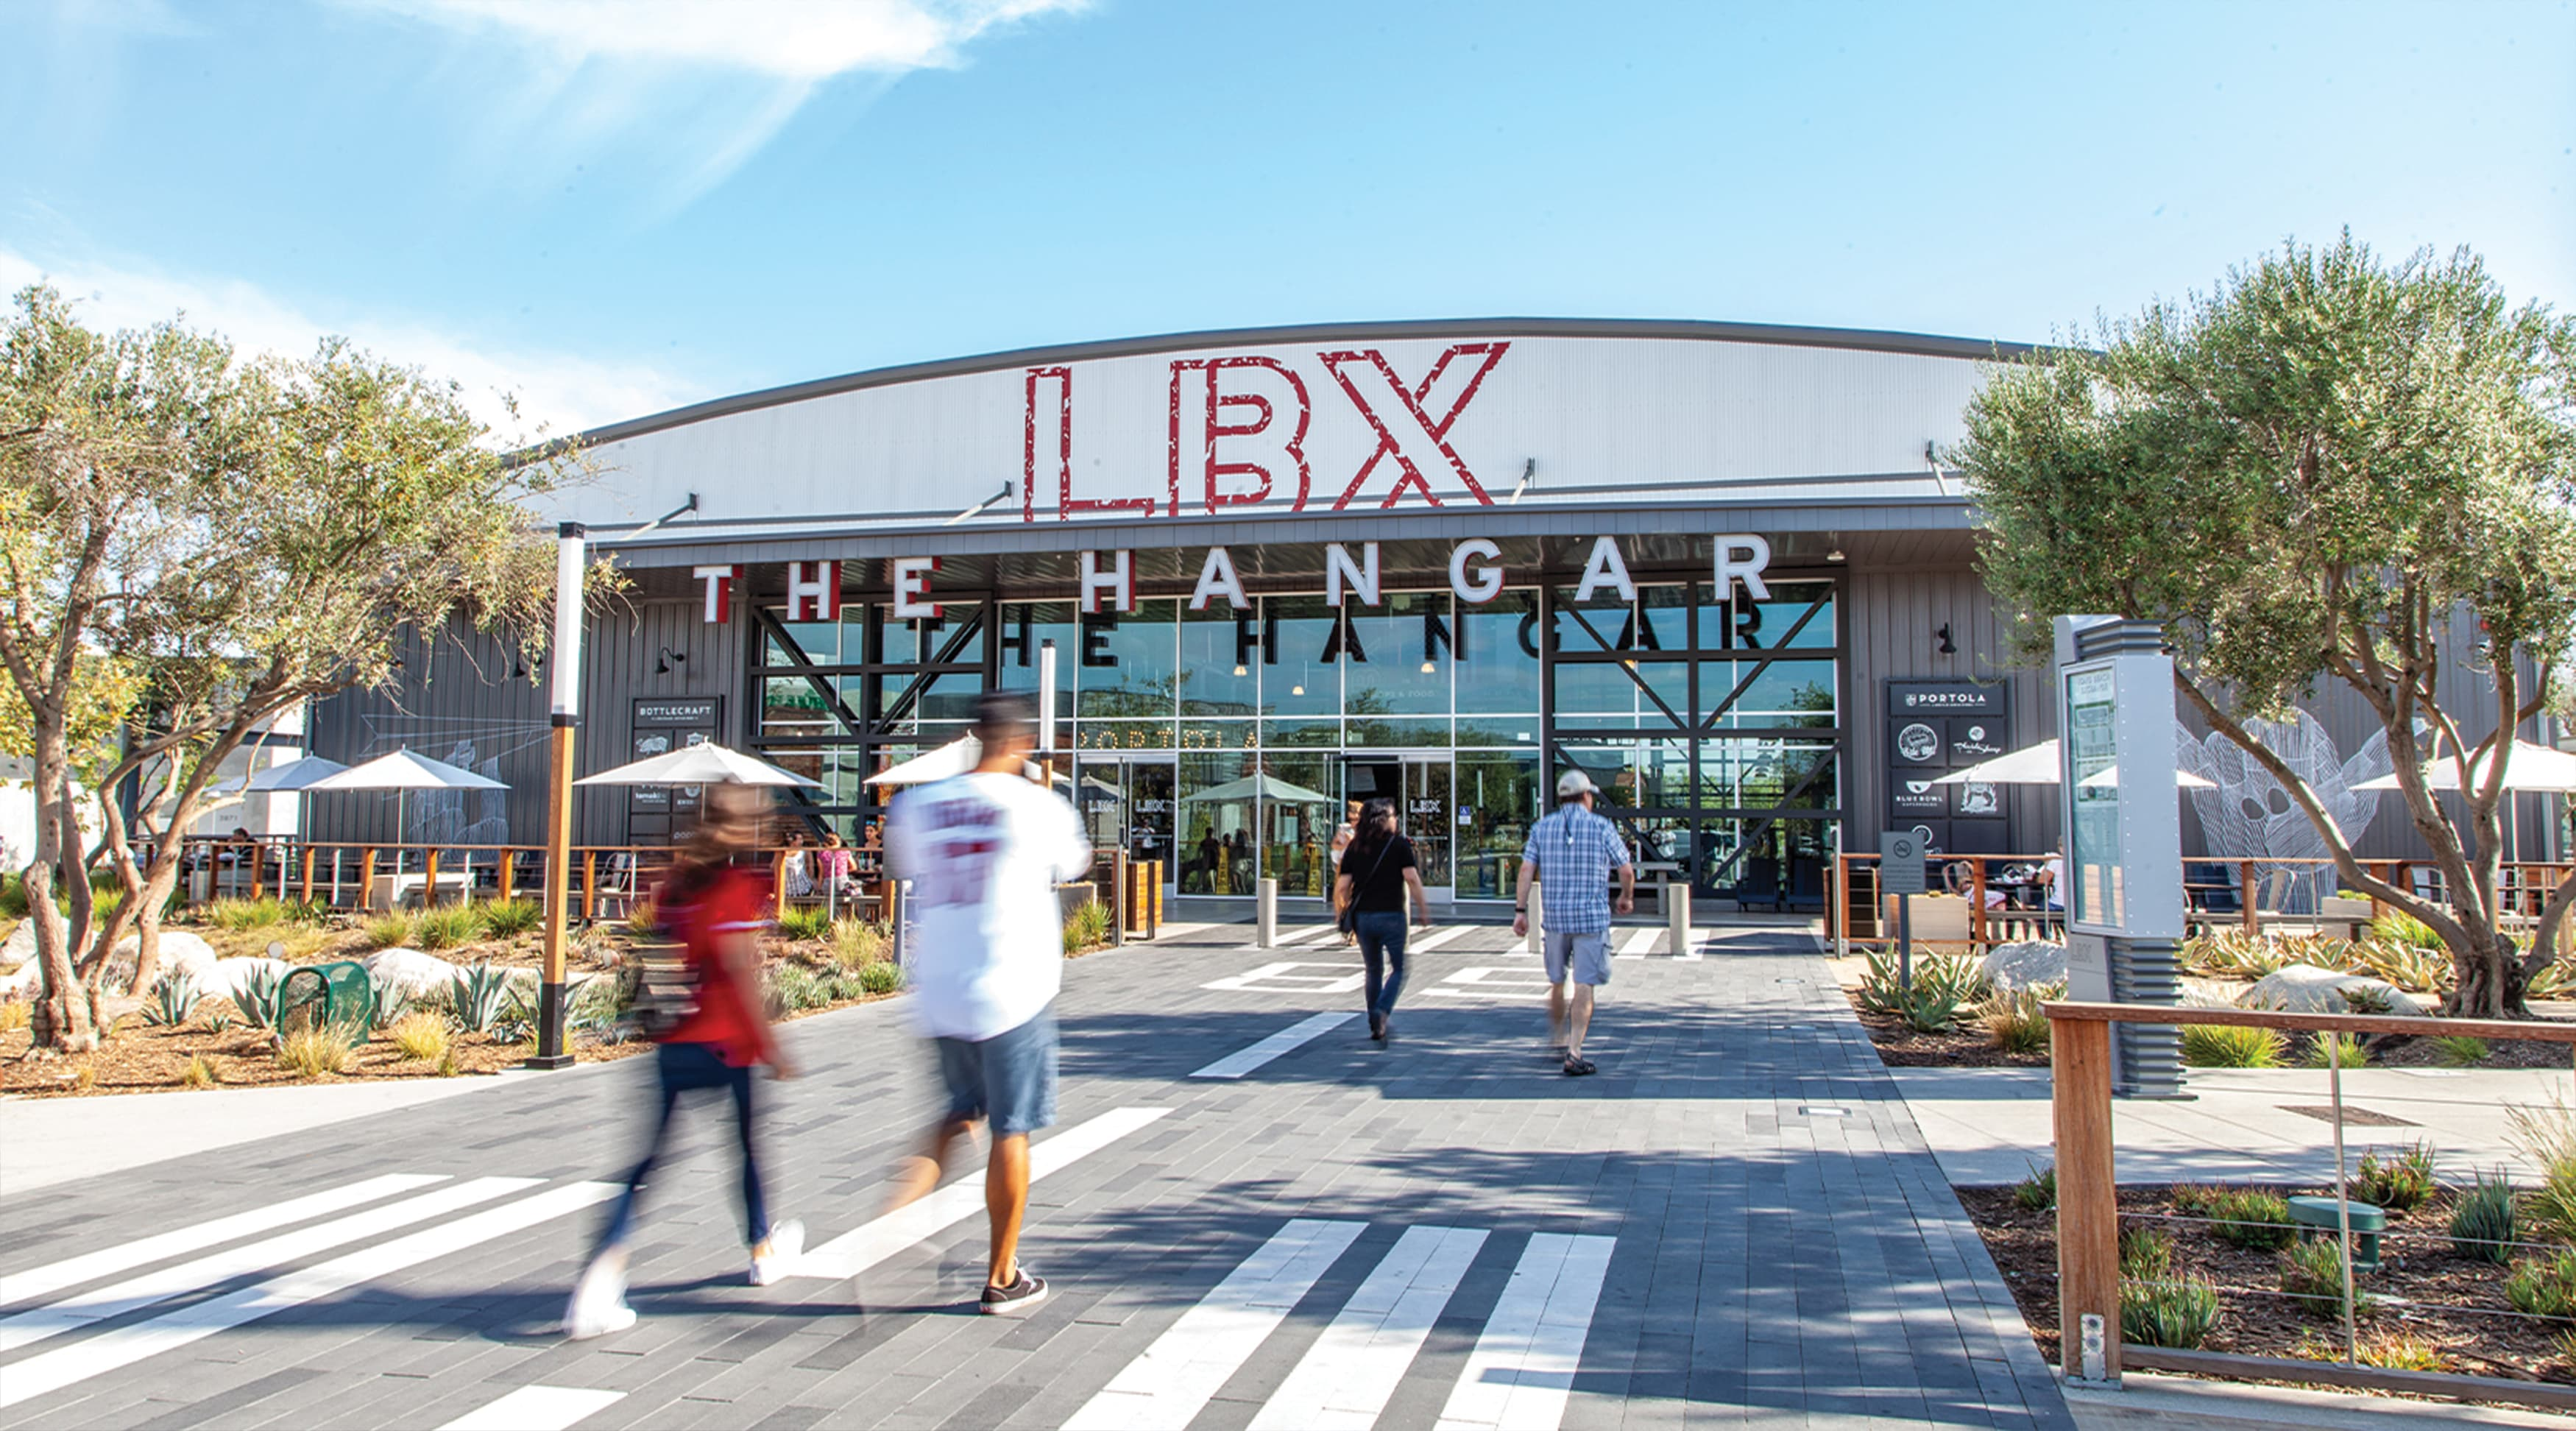 Long Beach Exchange Retail Design Project Identity Signage and Graphic Architecture